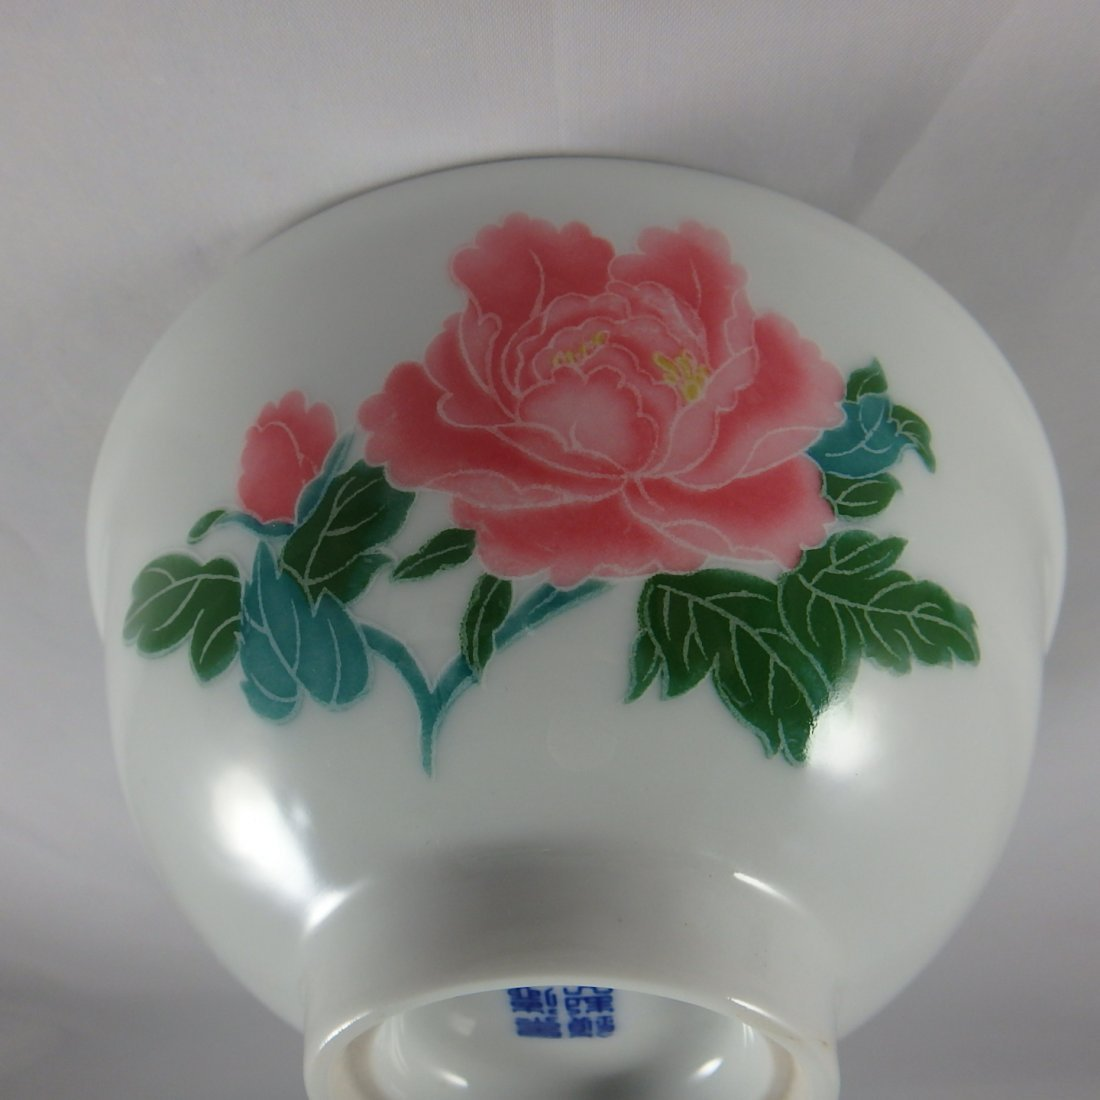 Chinese Porcelain Bowl, 20th/c